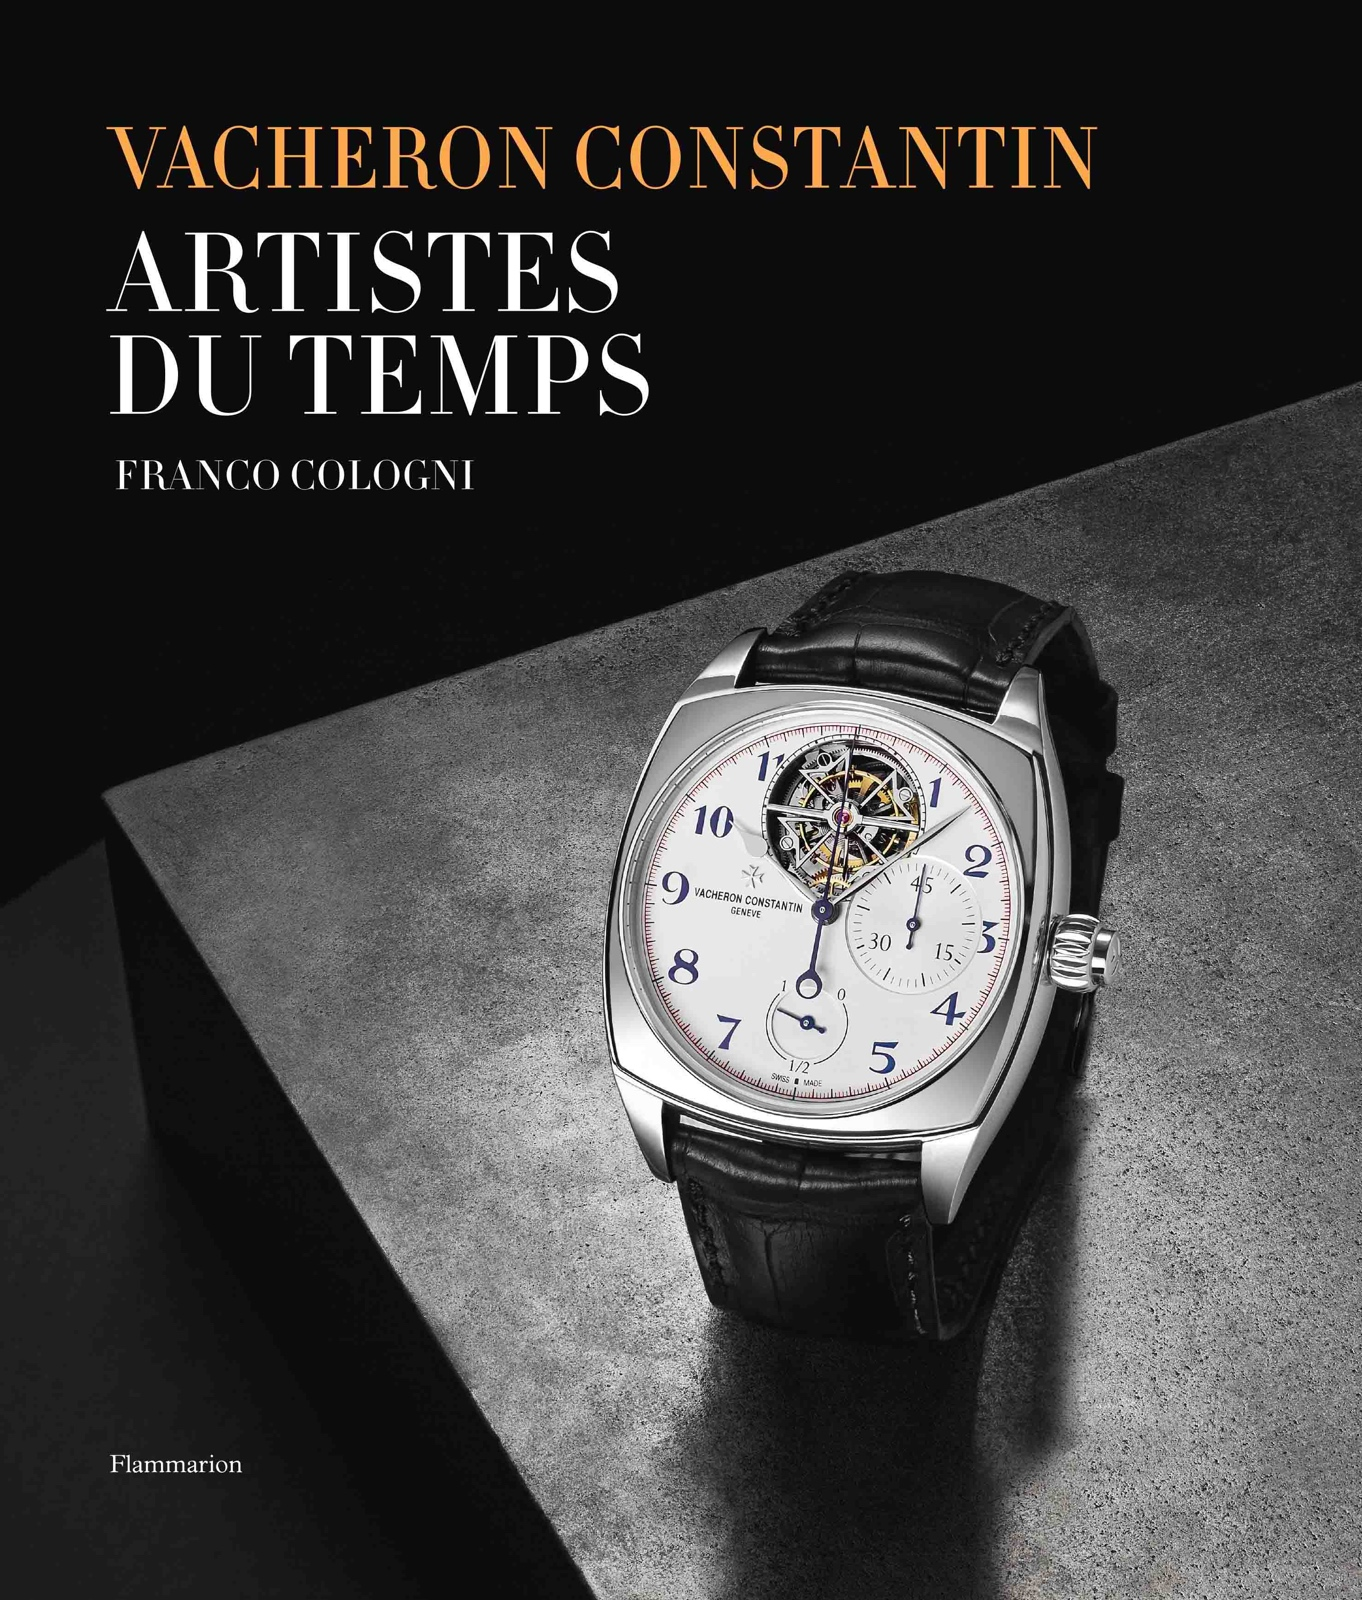 Vacheron Constantin Artists of Time - cover